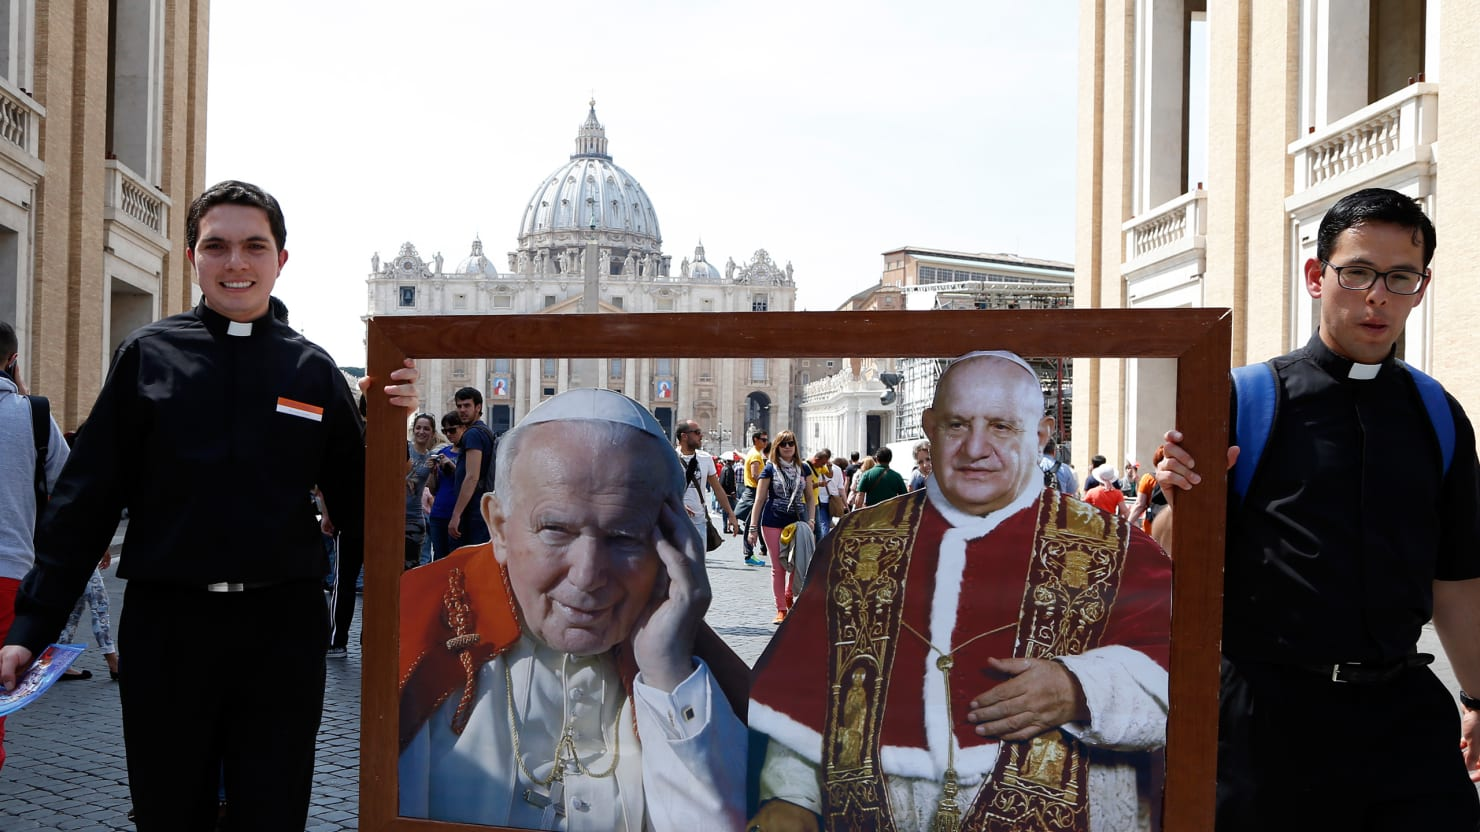 Popes, Saints, Miracles, Weird Relics and Odd Omens Converge on Rome